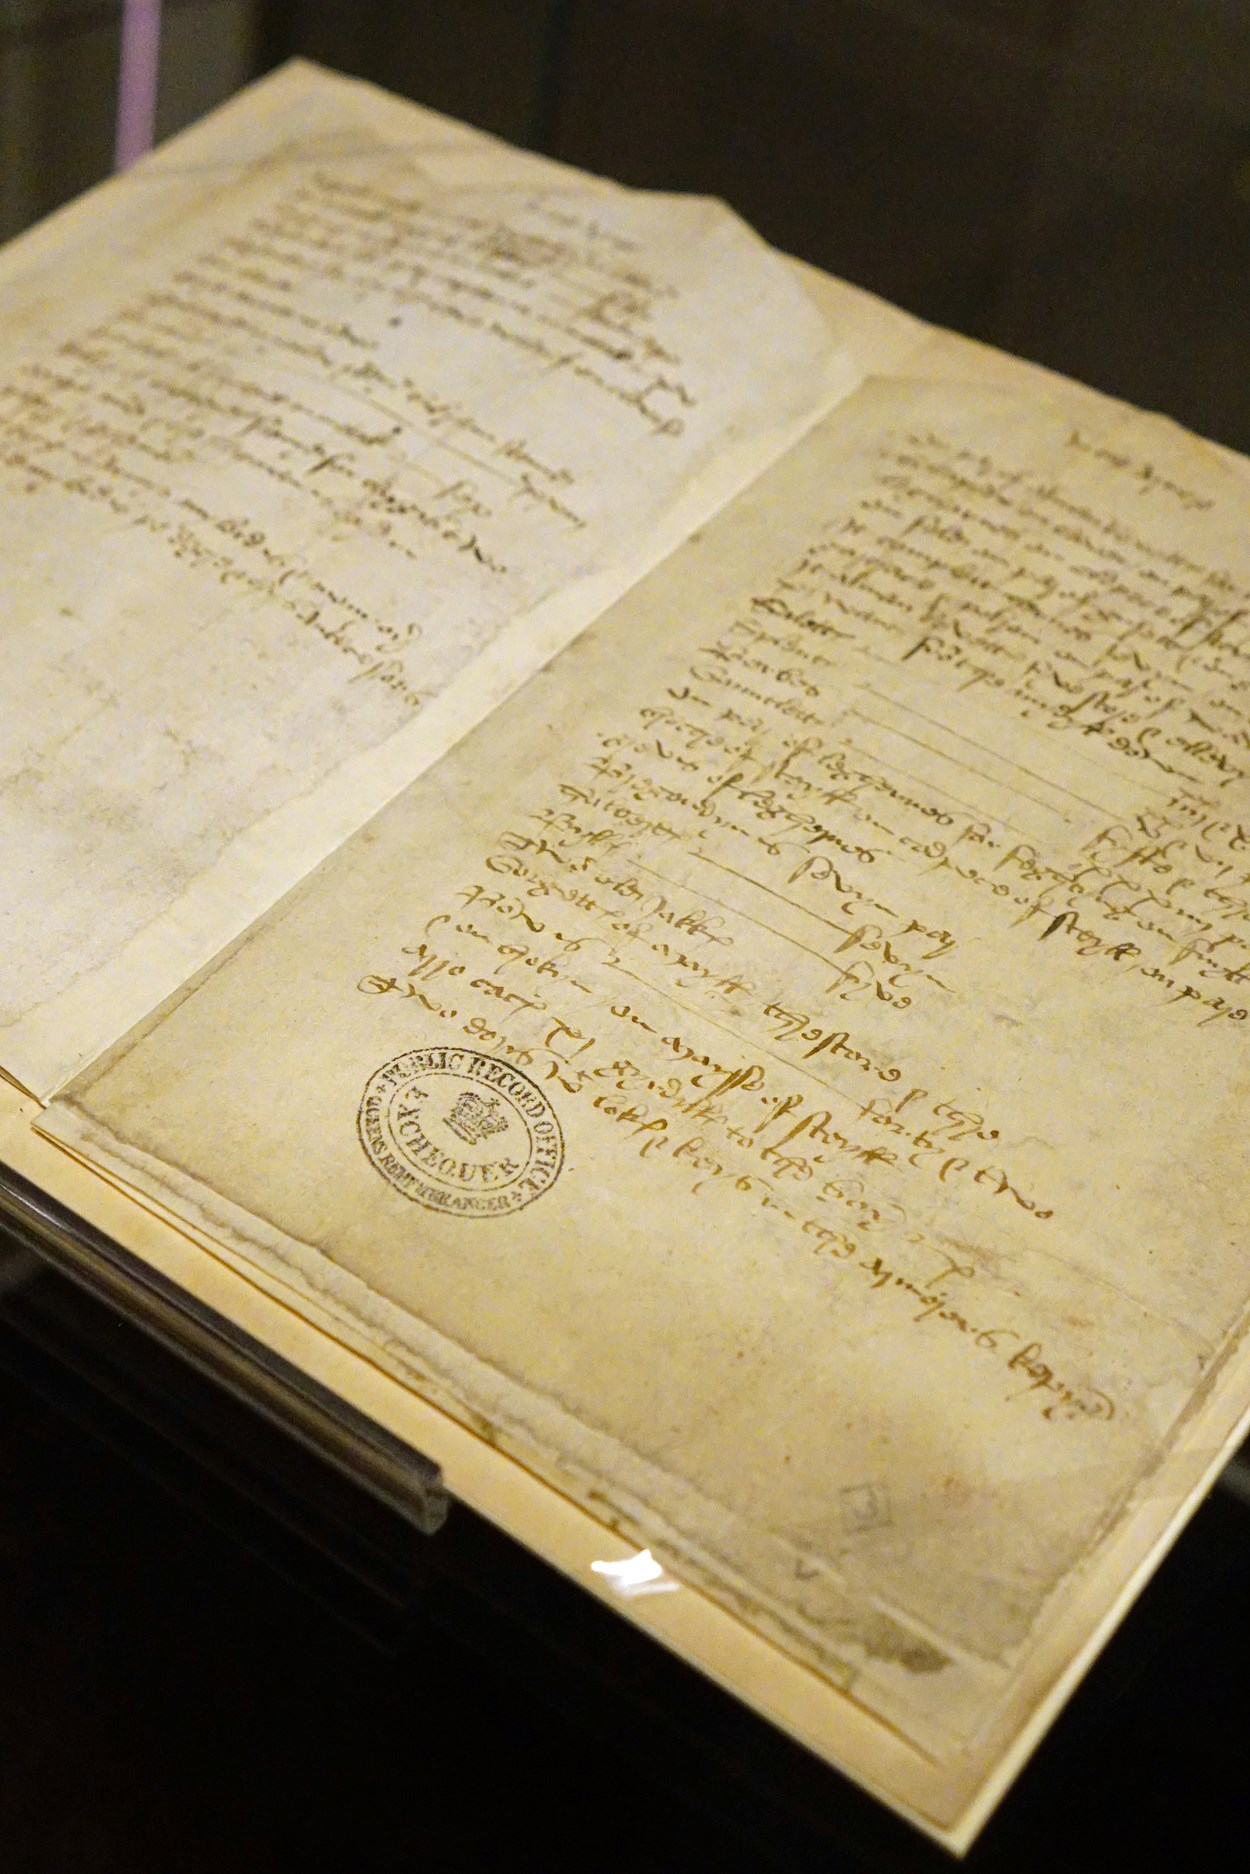 Below the Salt: The 500 year-old inventory of Temple Newsam House, on loan from The National Archives for Below the Salt.